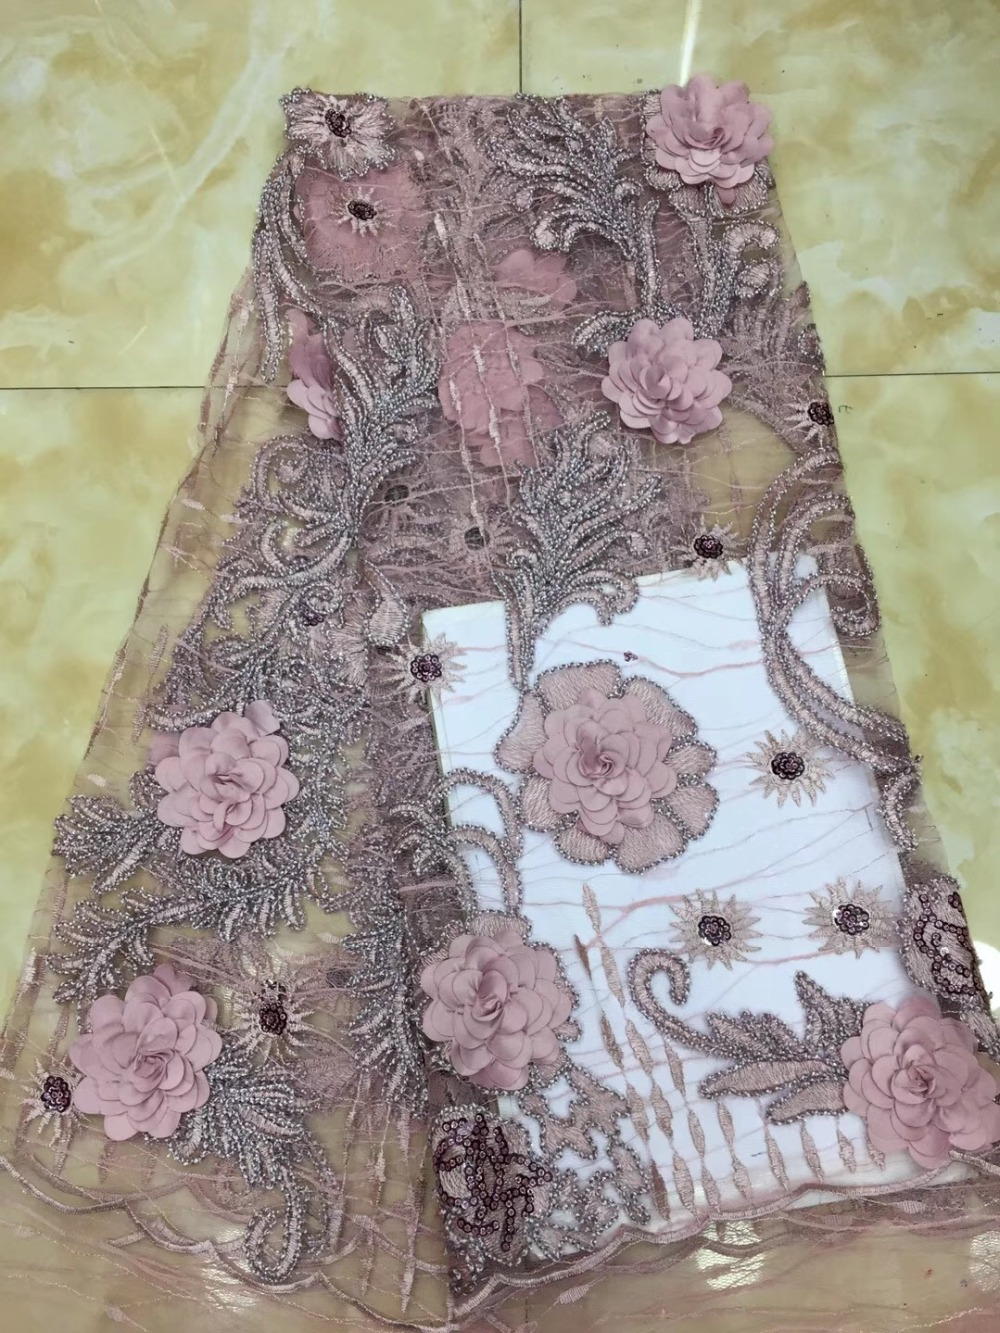 New African Lace Fabric, 2018 Latest French Quality Lace Fabric, Embroidered with Nigerian Lace FabricNew African Lace Fabric, 2018 Latest French Quality Lace Fabric, Embroidered with Nigerian Lace Fabric